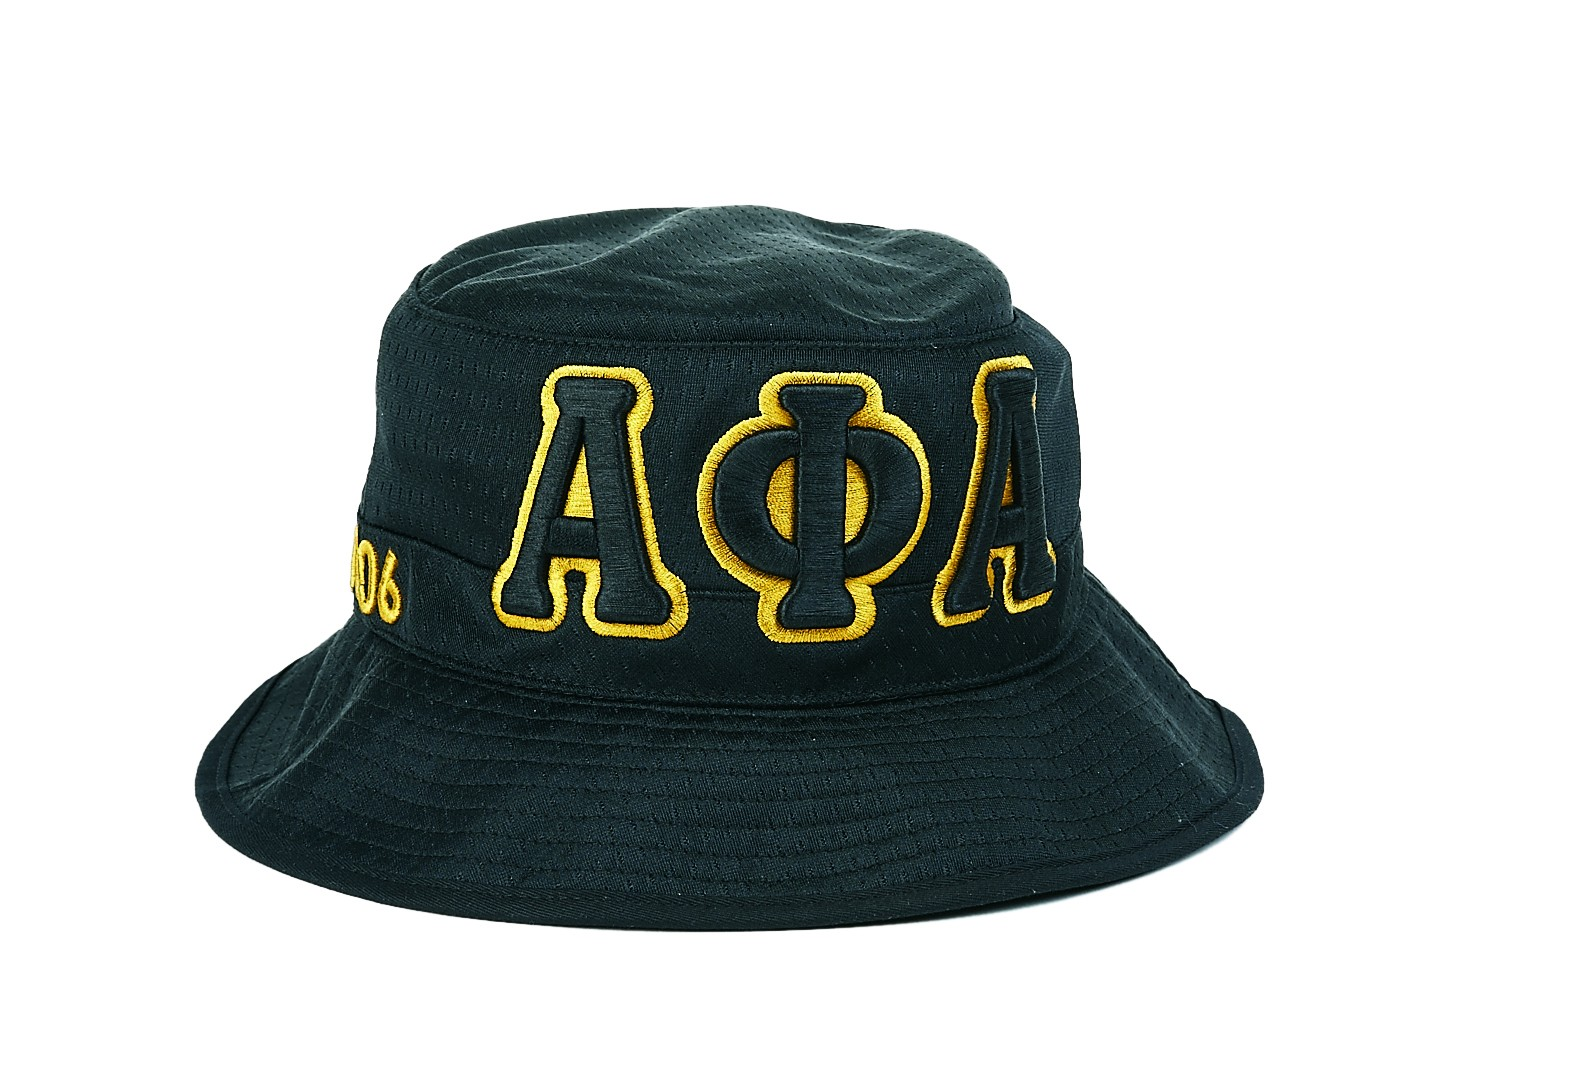 c376b546 Bucket Hats · Greek CertiPHIed Apparel · Online Store Powered by ...